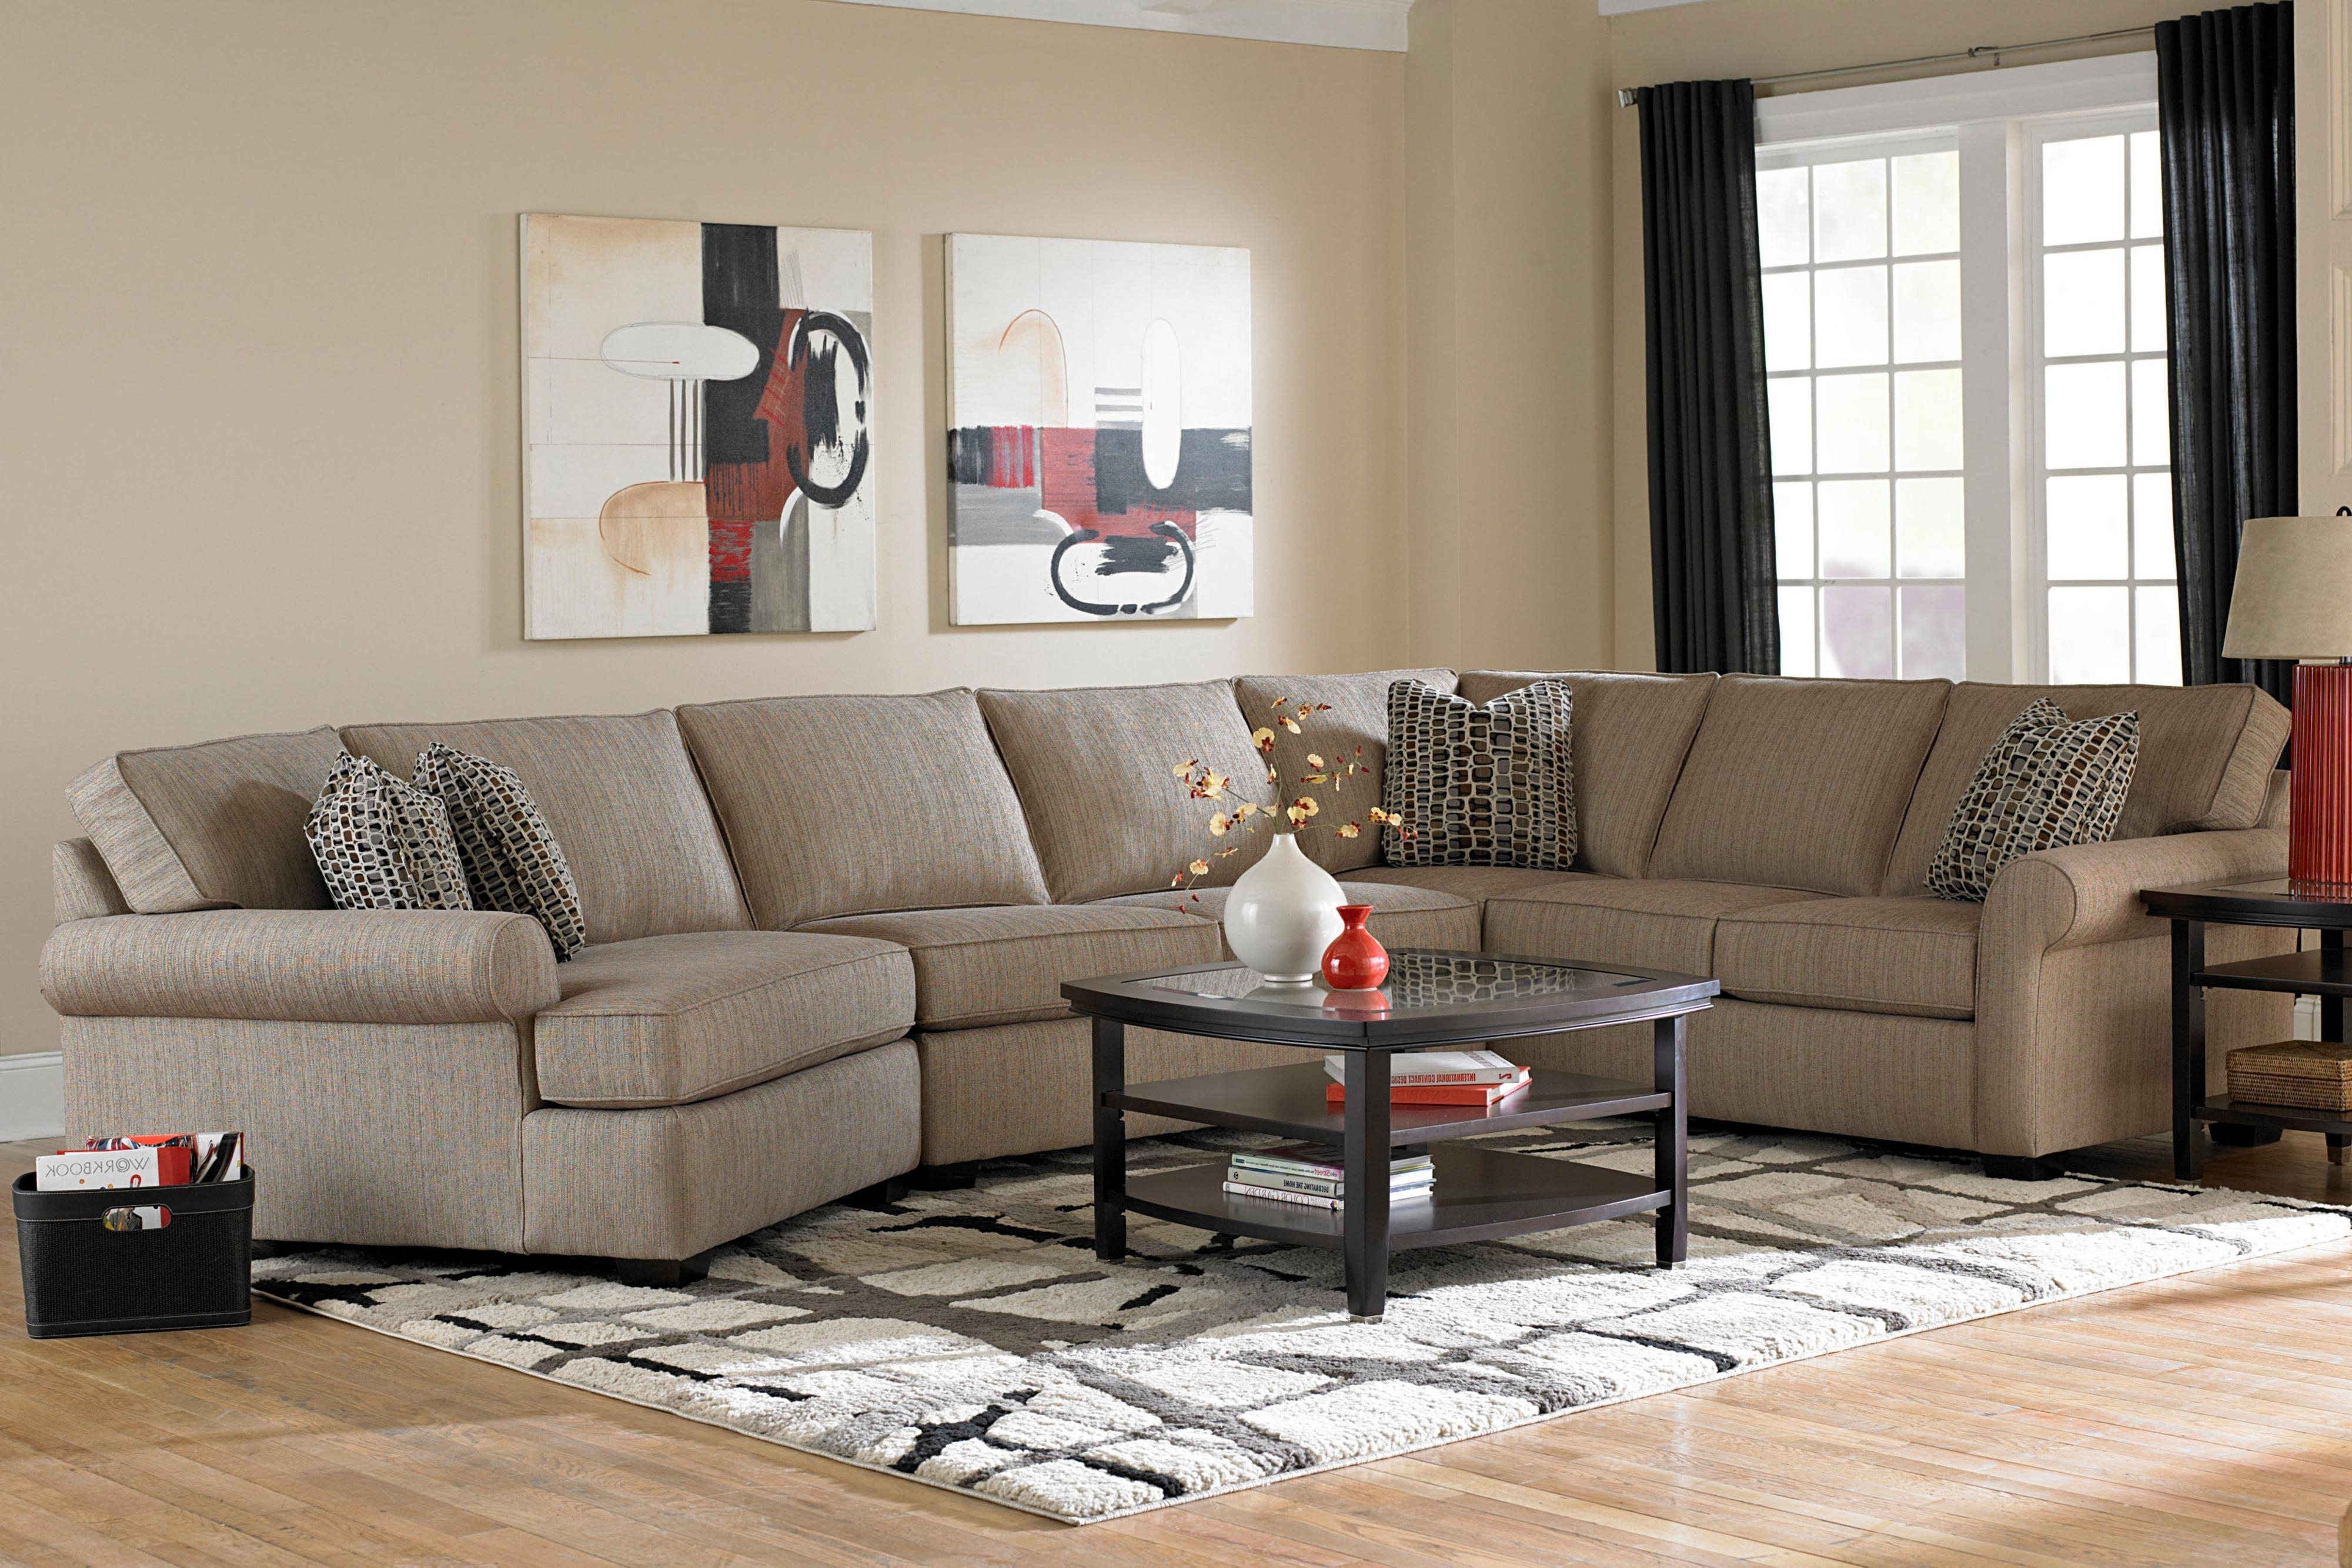 St Cloud Mn Sectional Sofas Within Current Broyhill Furniture Ethan Transitional Sectional Sofa With Right (View 16 of 20)